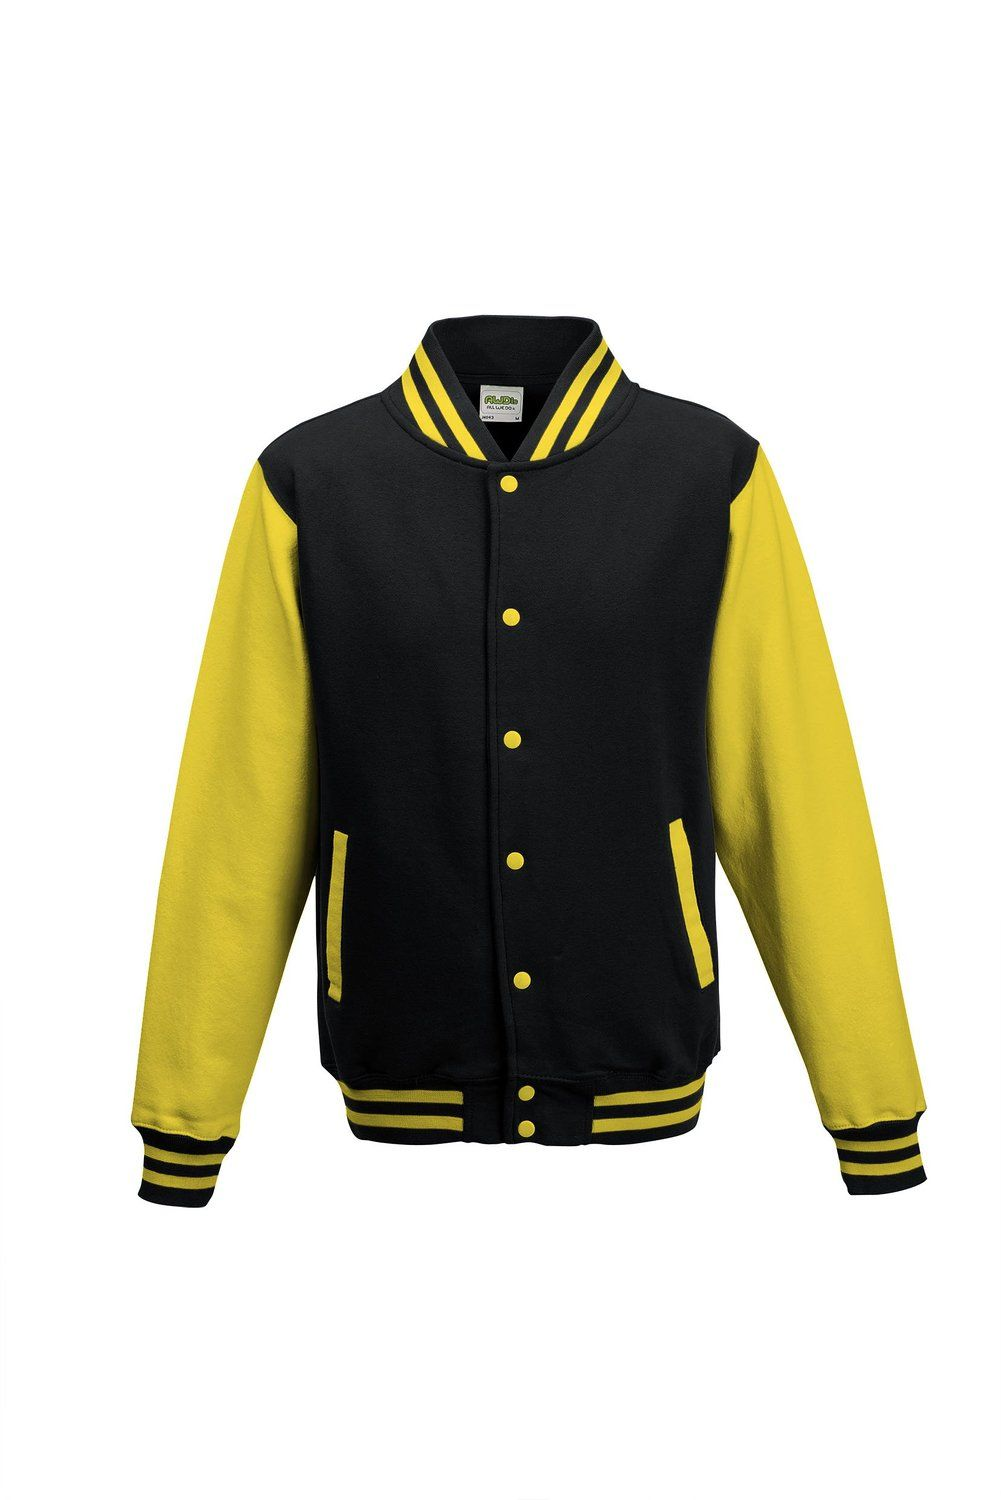 Amazon.com: Awdis Unisex Varsity Jacket (XL) (Jet Black/ Sun Yellow): Sports & Outdoors